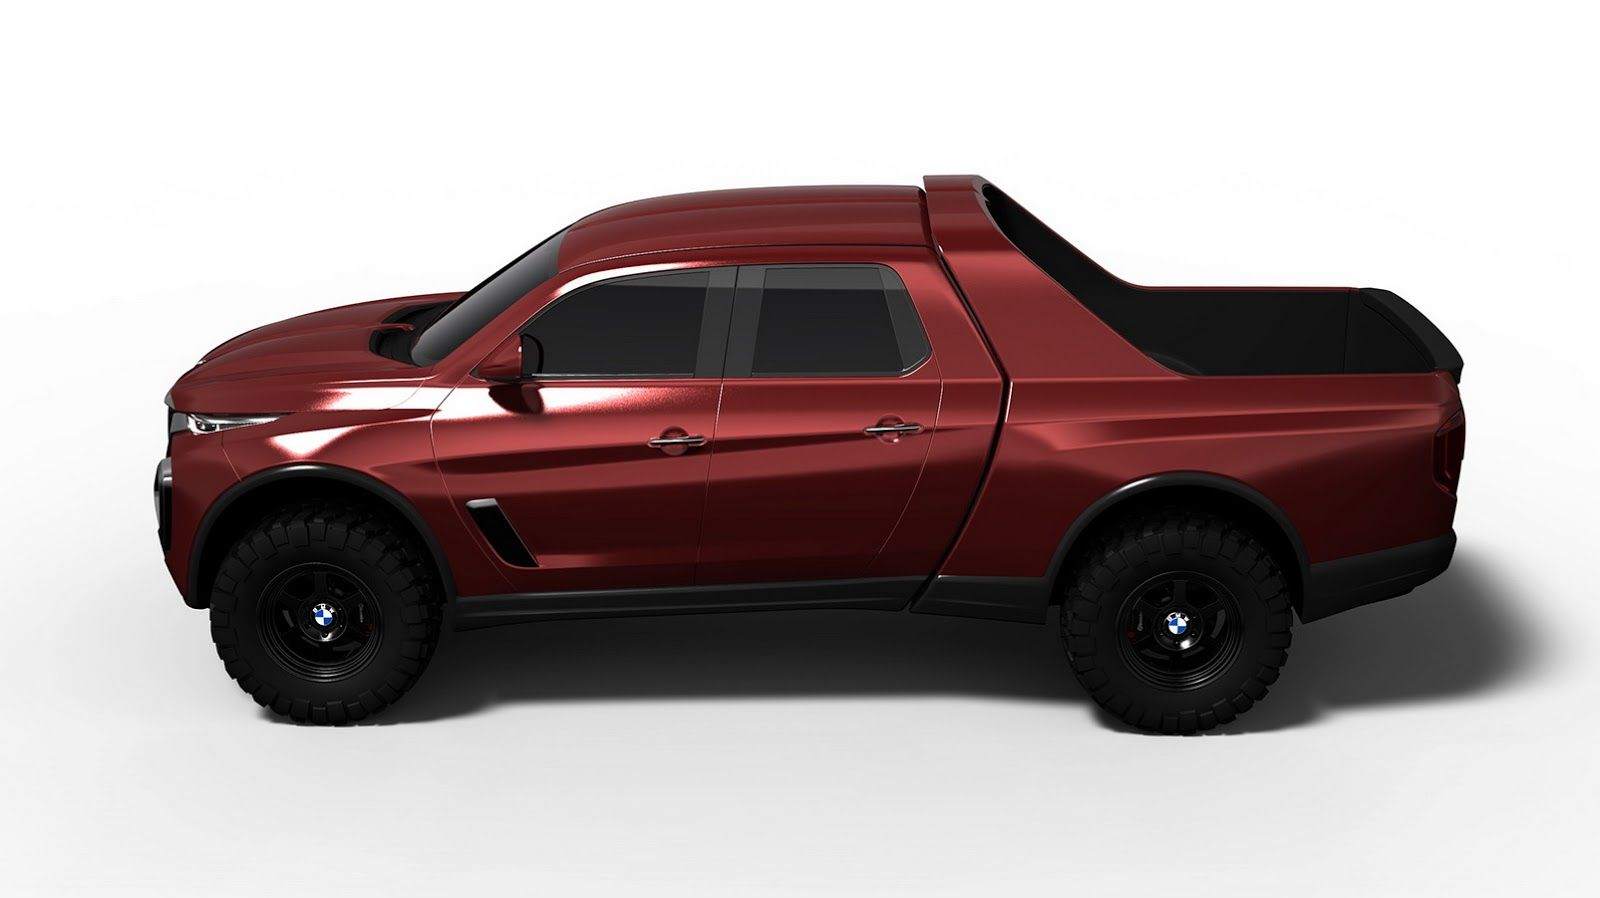 A Bmw Pickup Truck Design Study That Doesn T Look Half Bad Carscoops In 2021 Bmw Truck Truck Design Pickup Trucks